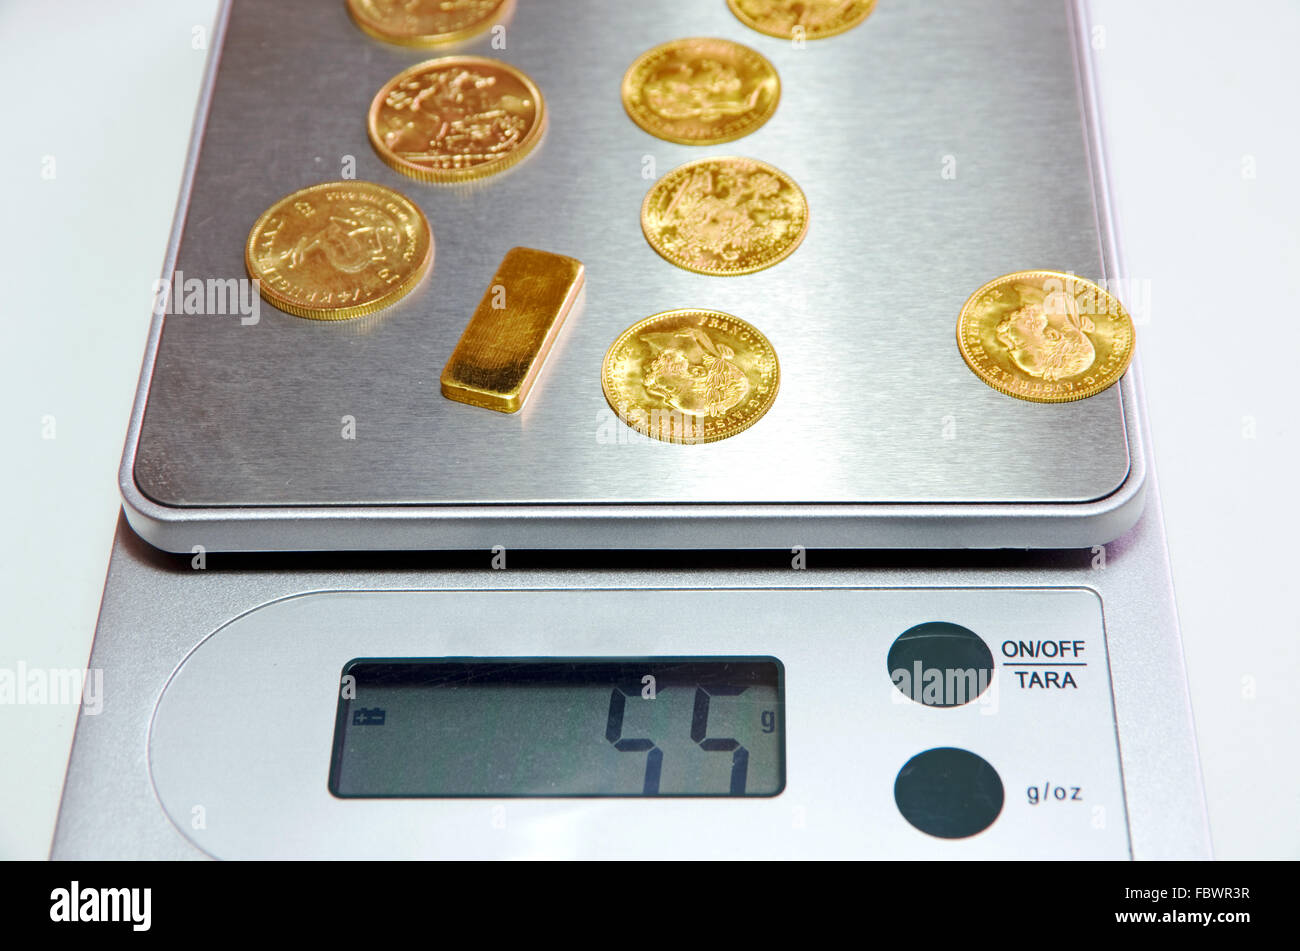 gold bar scales - Stock Image